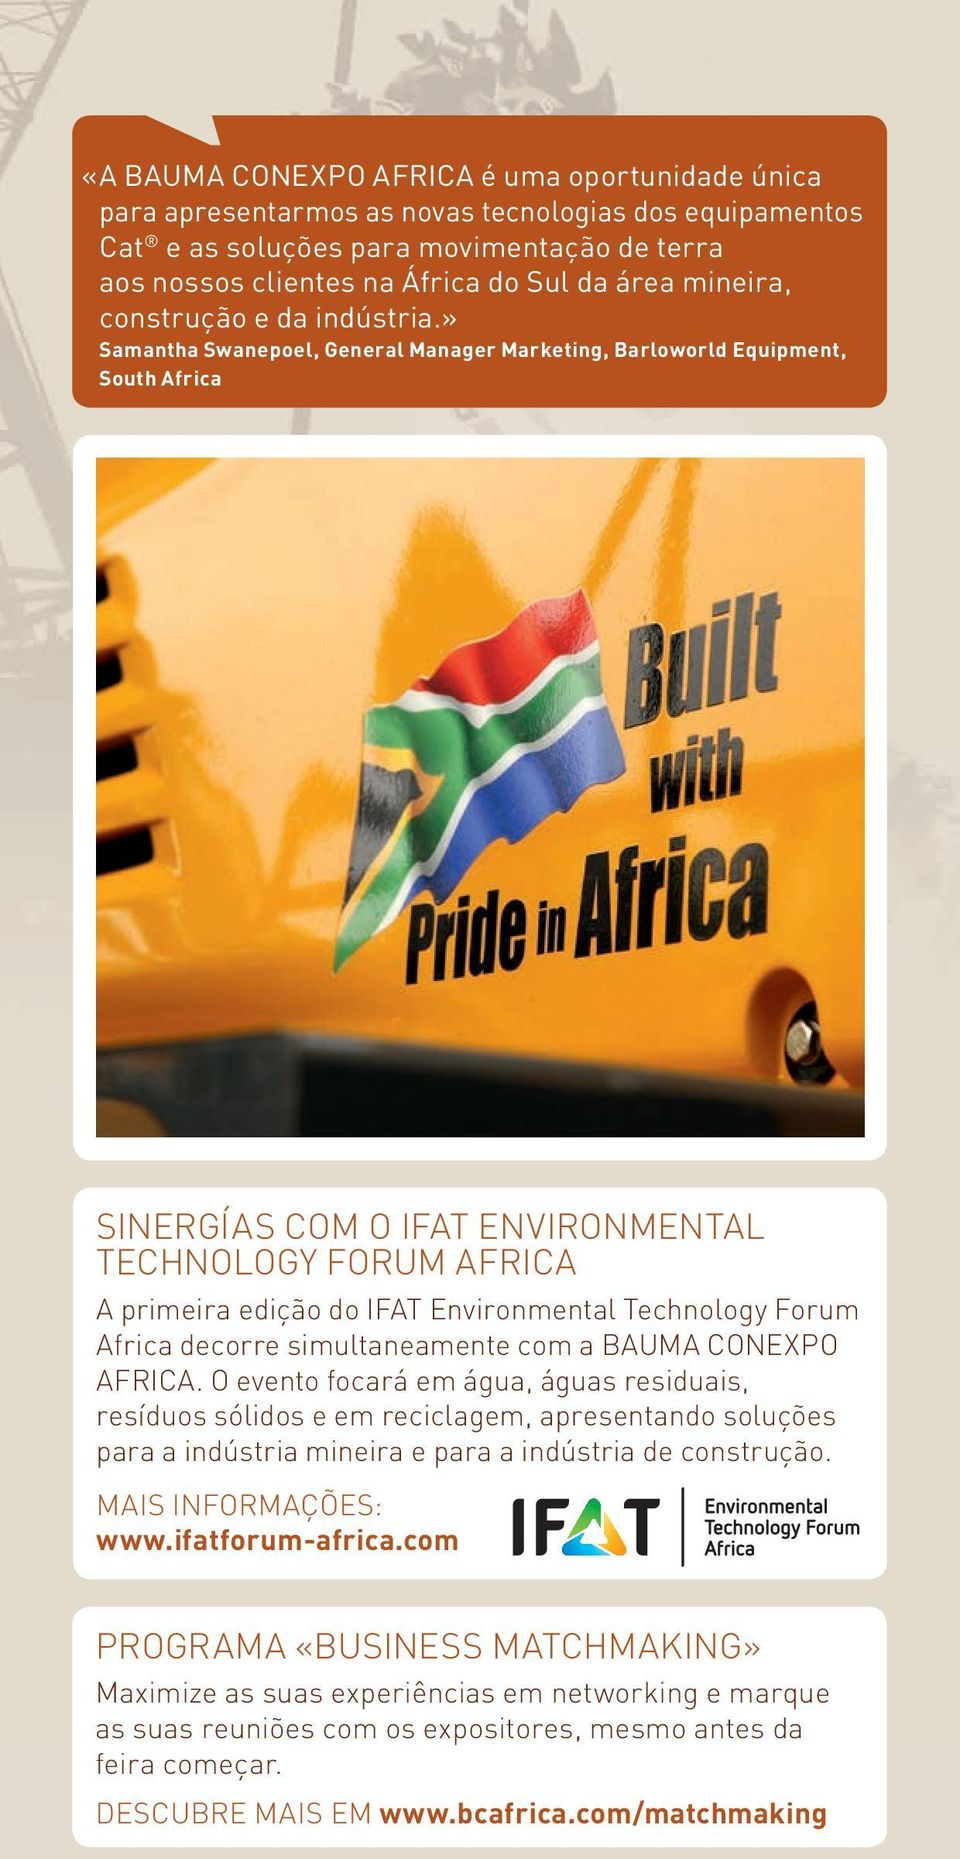 » Samantha Swanepoel, General Manager Marketing, Barloworld Equipment, South Africa SINERGÍAS COM O IFAT ENVIRONMENTAL TECHNOLOGY FORUM AFRICA A primeira edição do IFAT Environmental Technology Forum